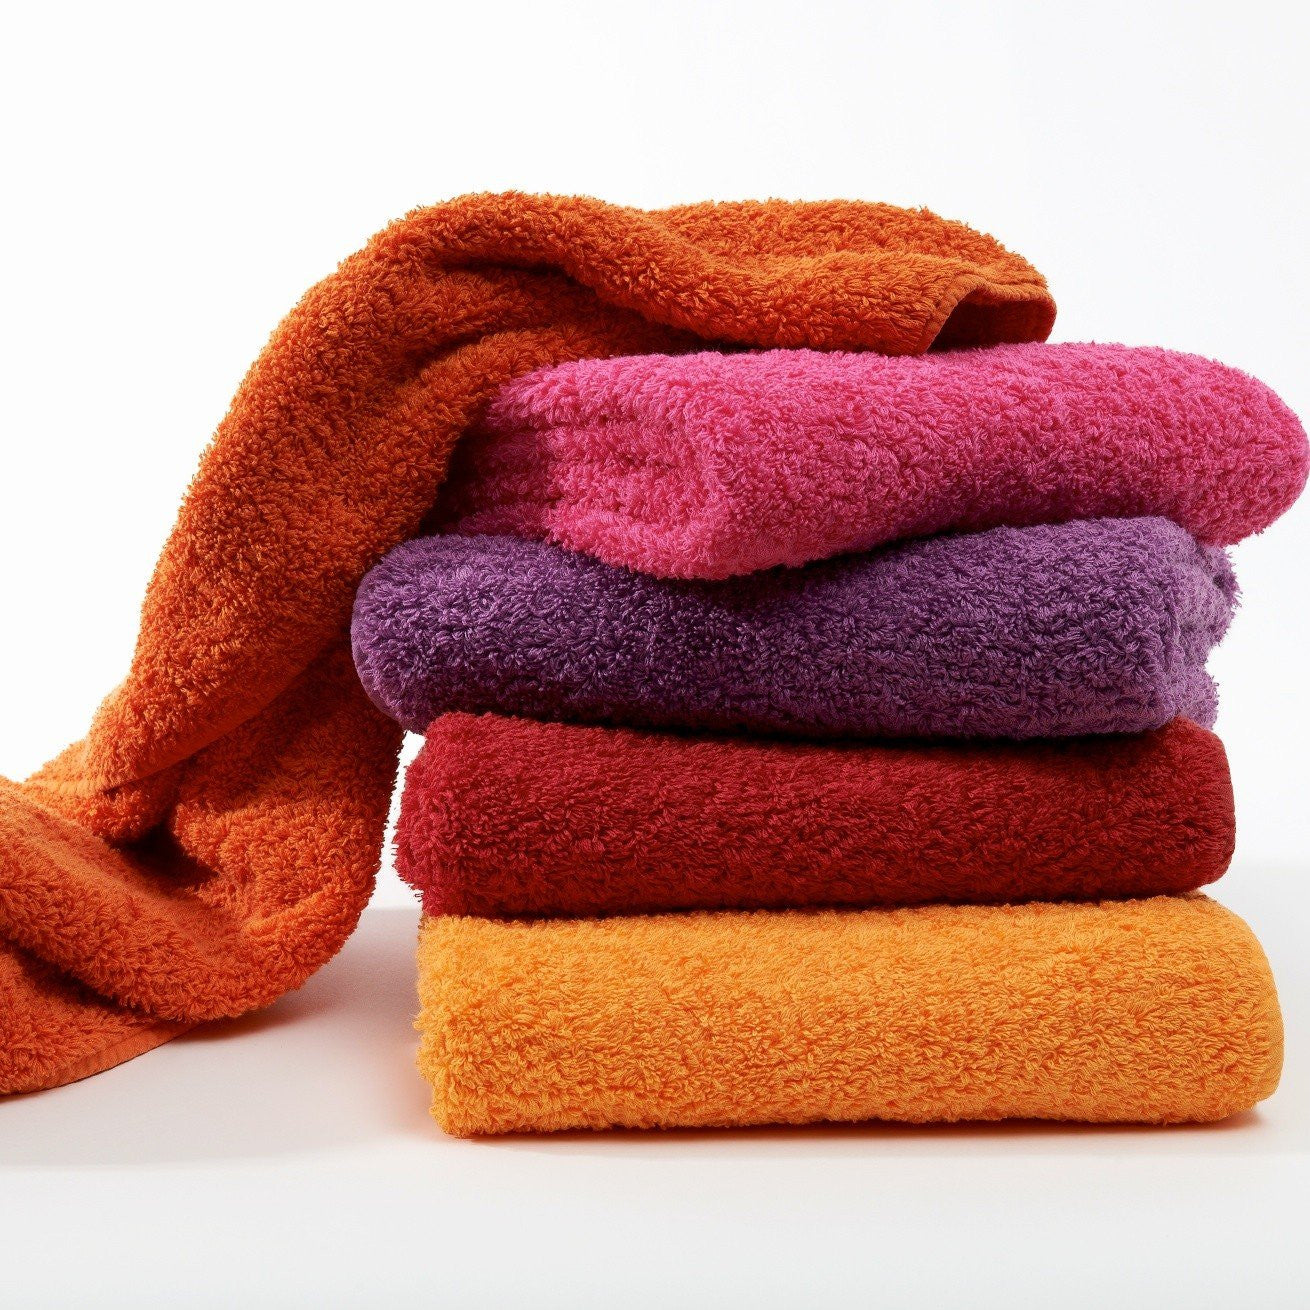 Superpile Towel Collection